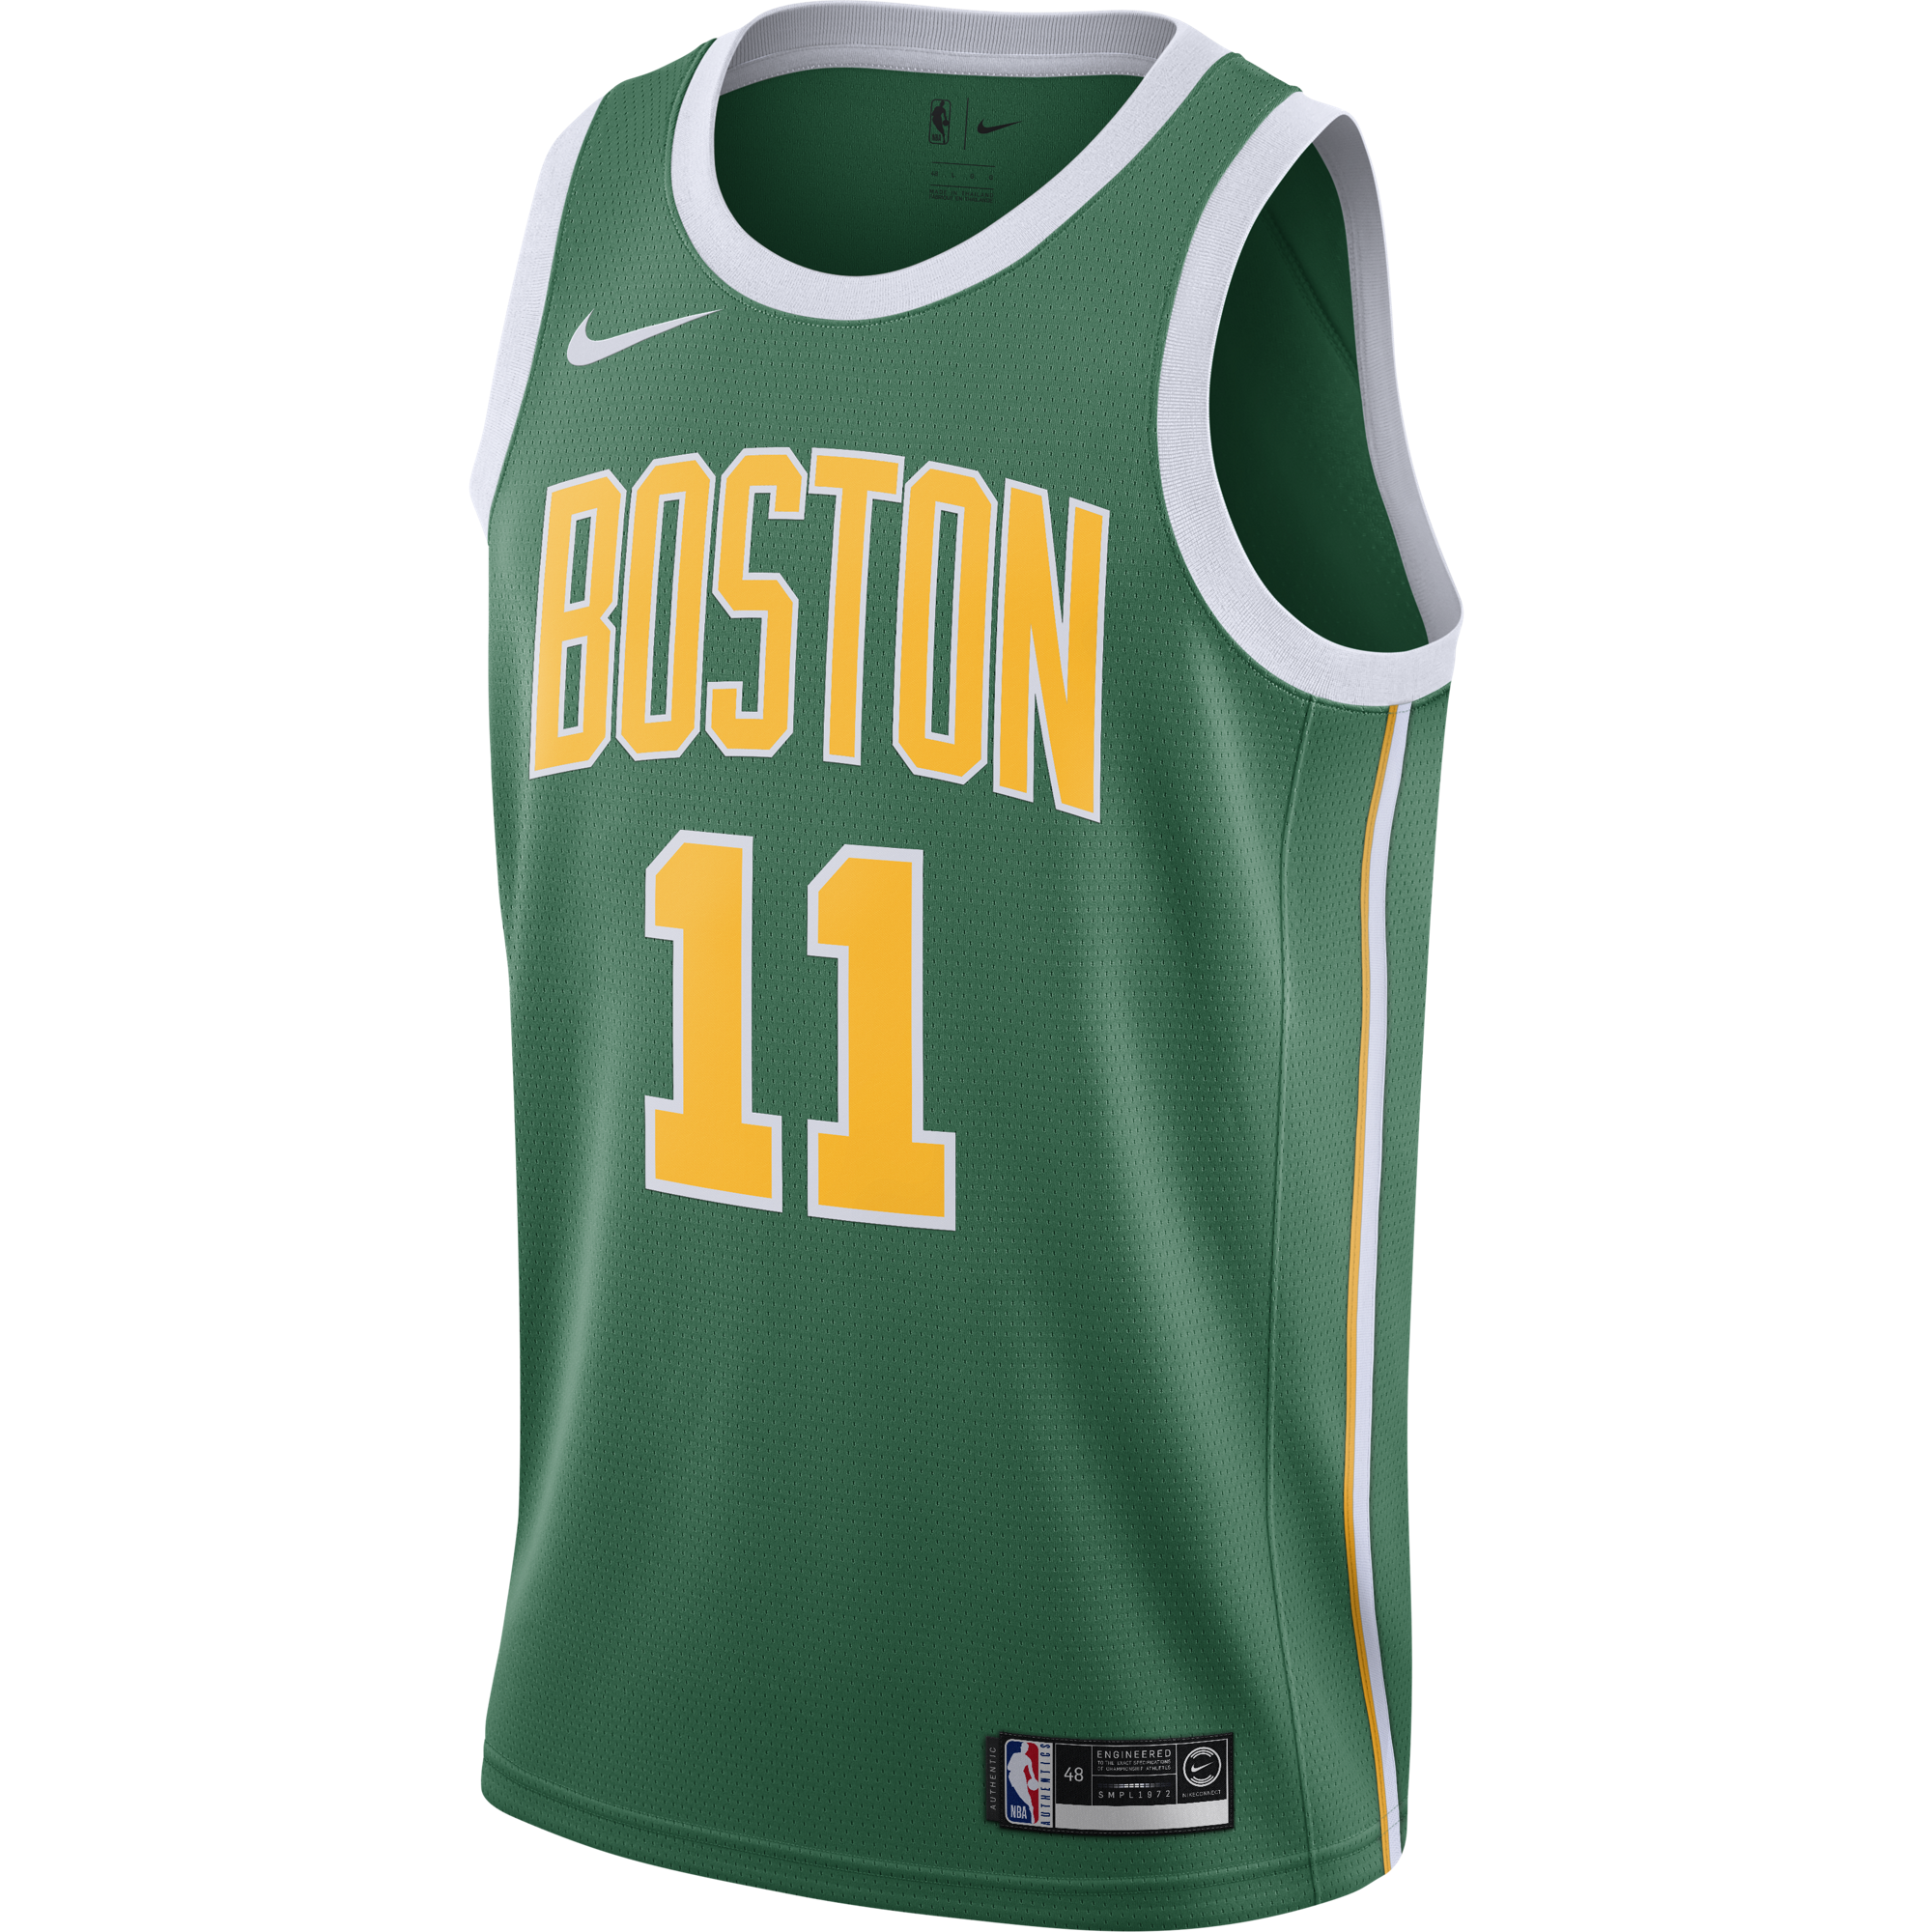 48970d7baa3 Kyrie Irving Nike Swingman Jersey - Earned Edition for $109.99 Fanatics